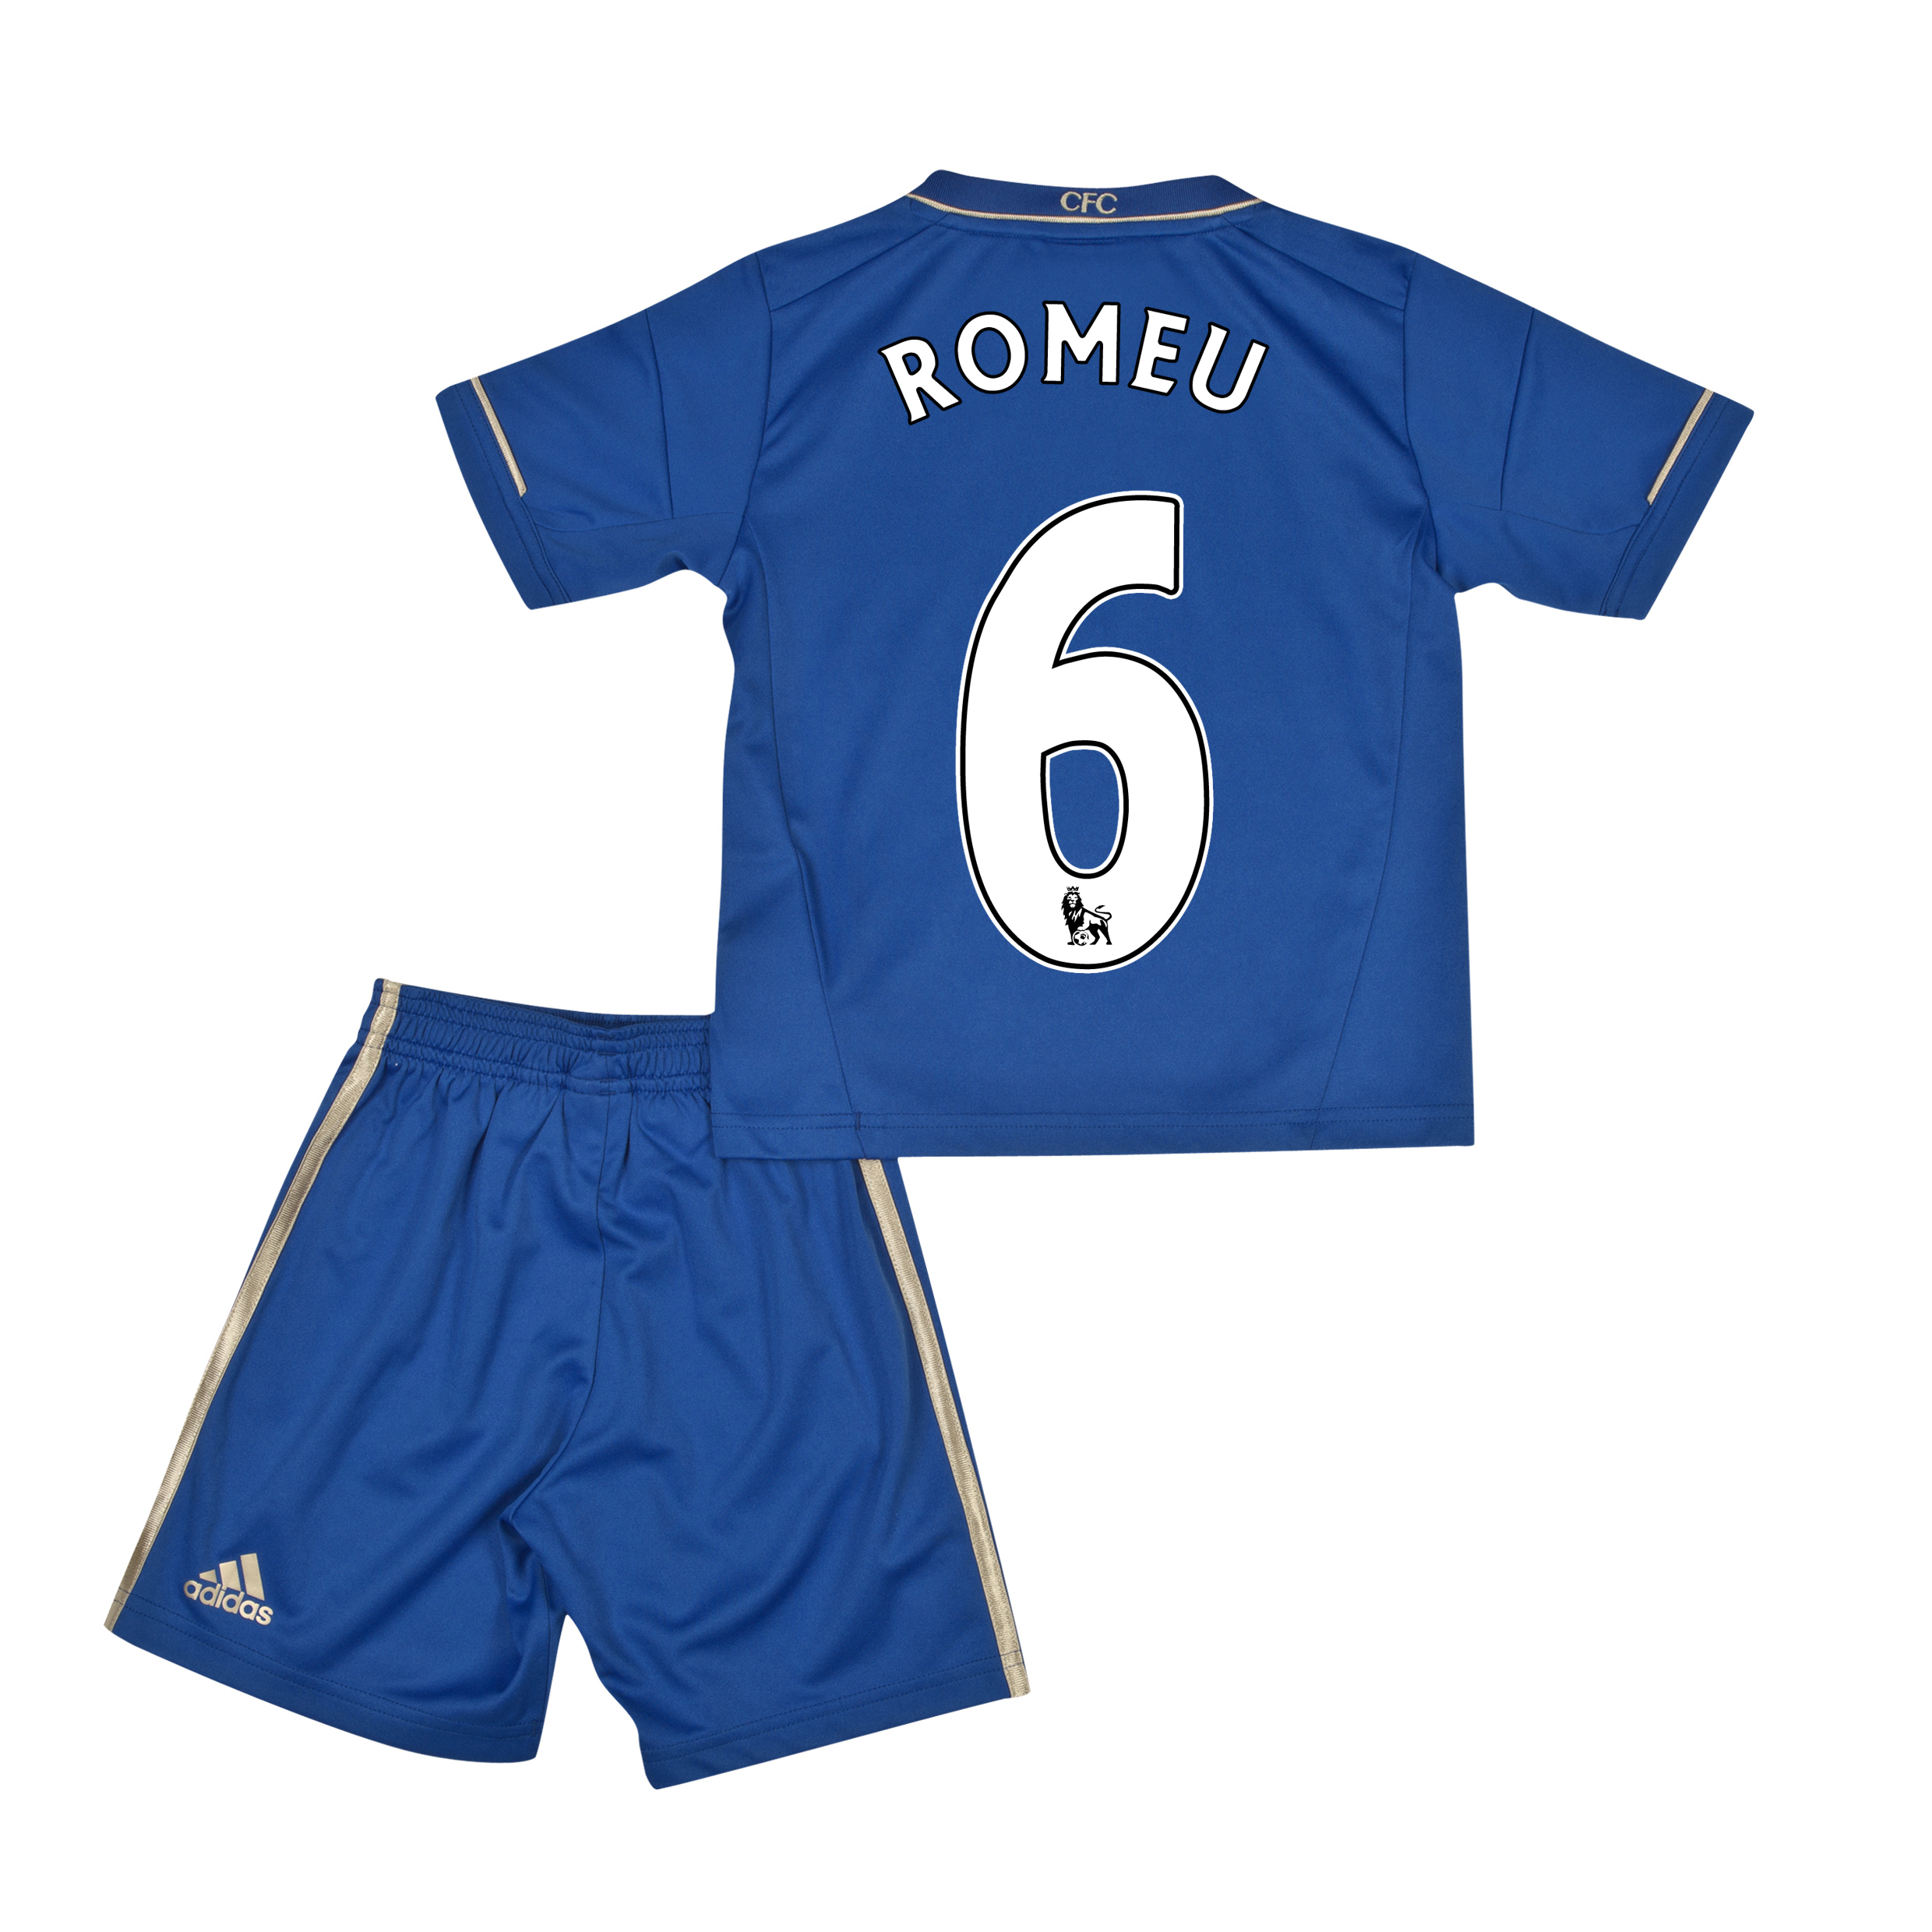 Chelsea Home Mini Kit 2012/13 with Romeu 6 printing